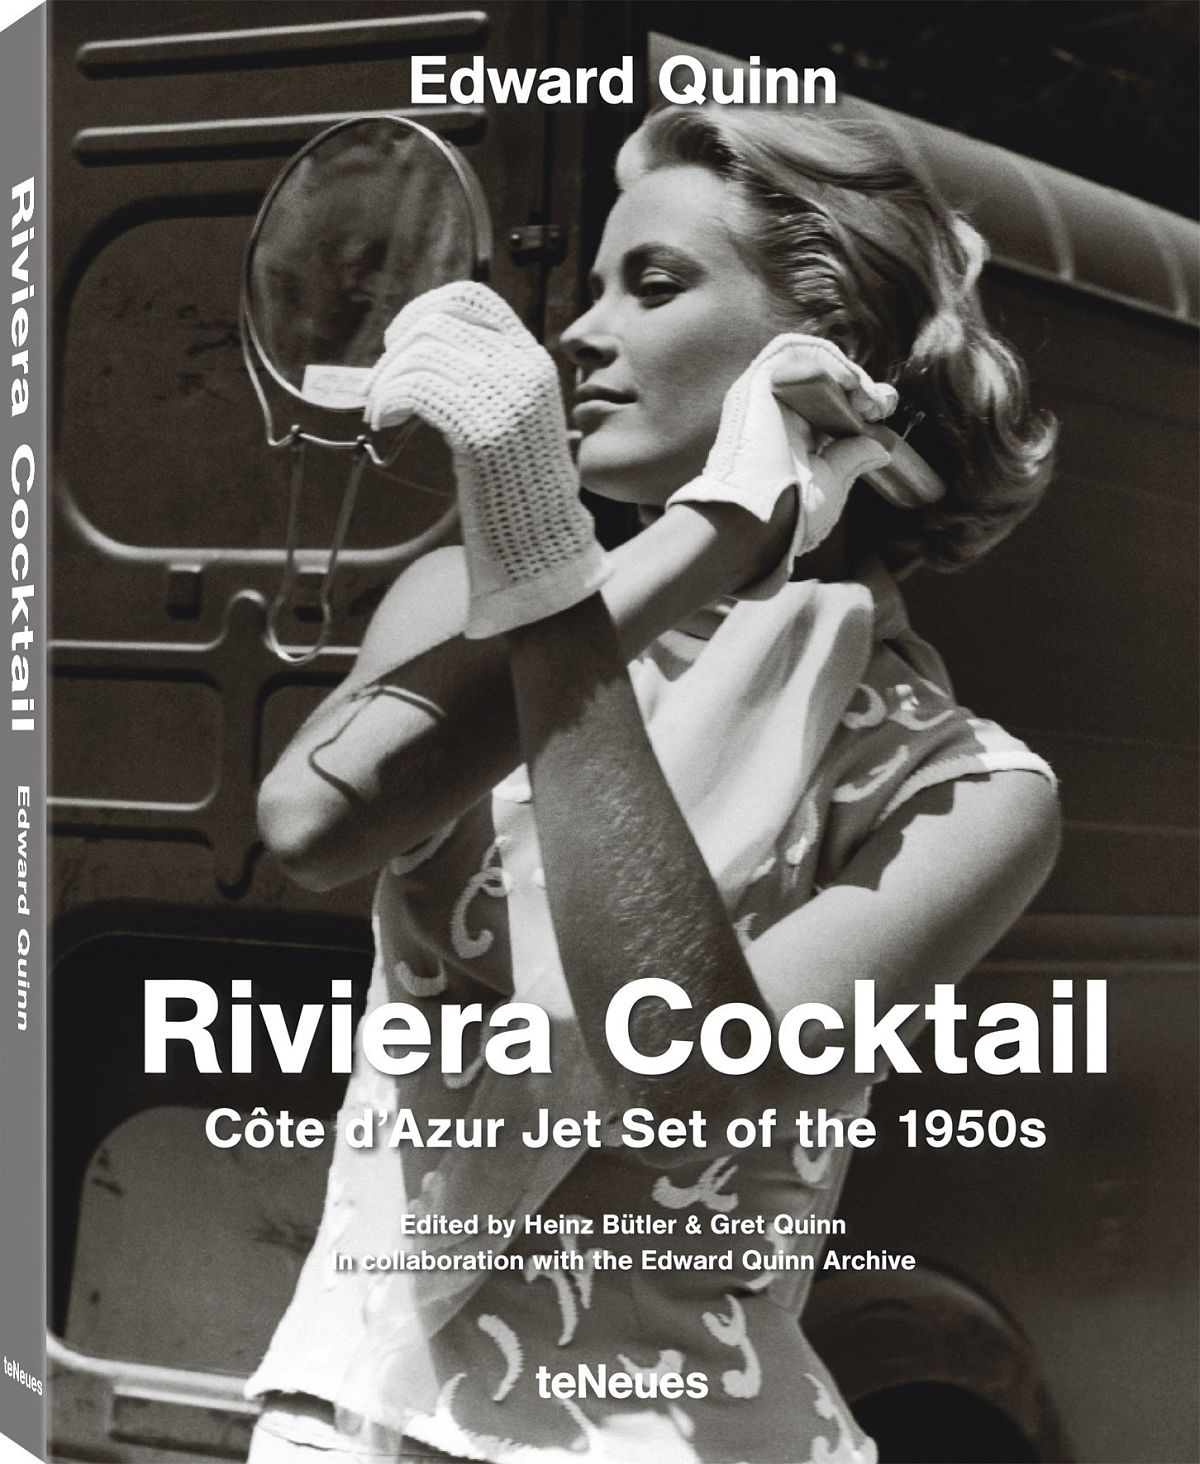 Edward Quinn: Riviera Cocktail